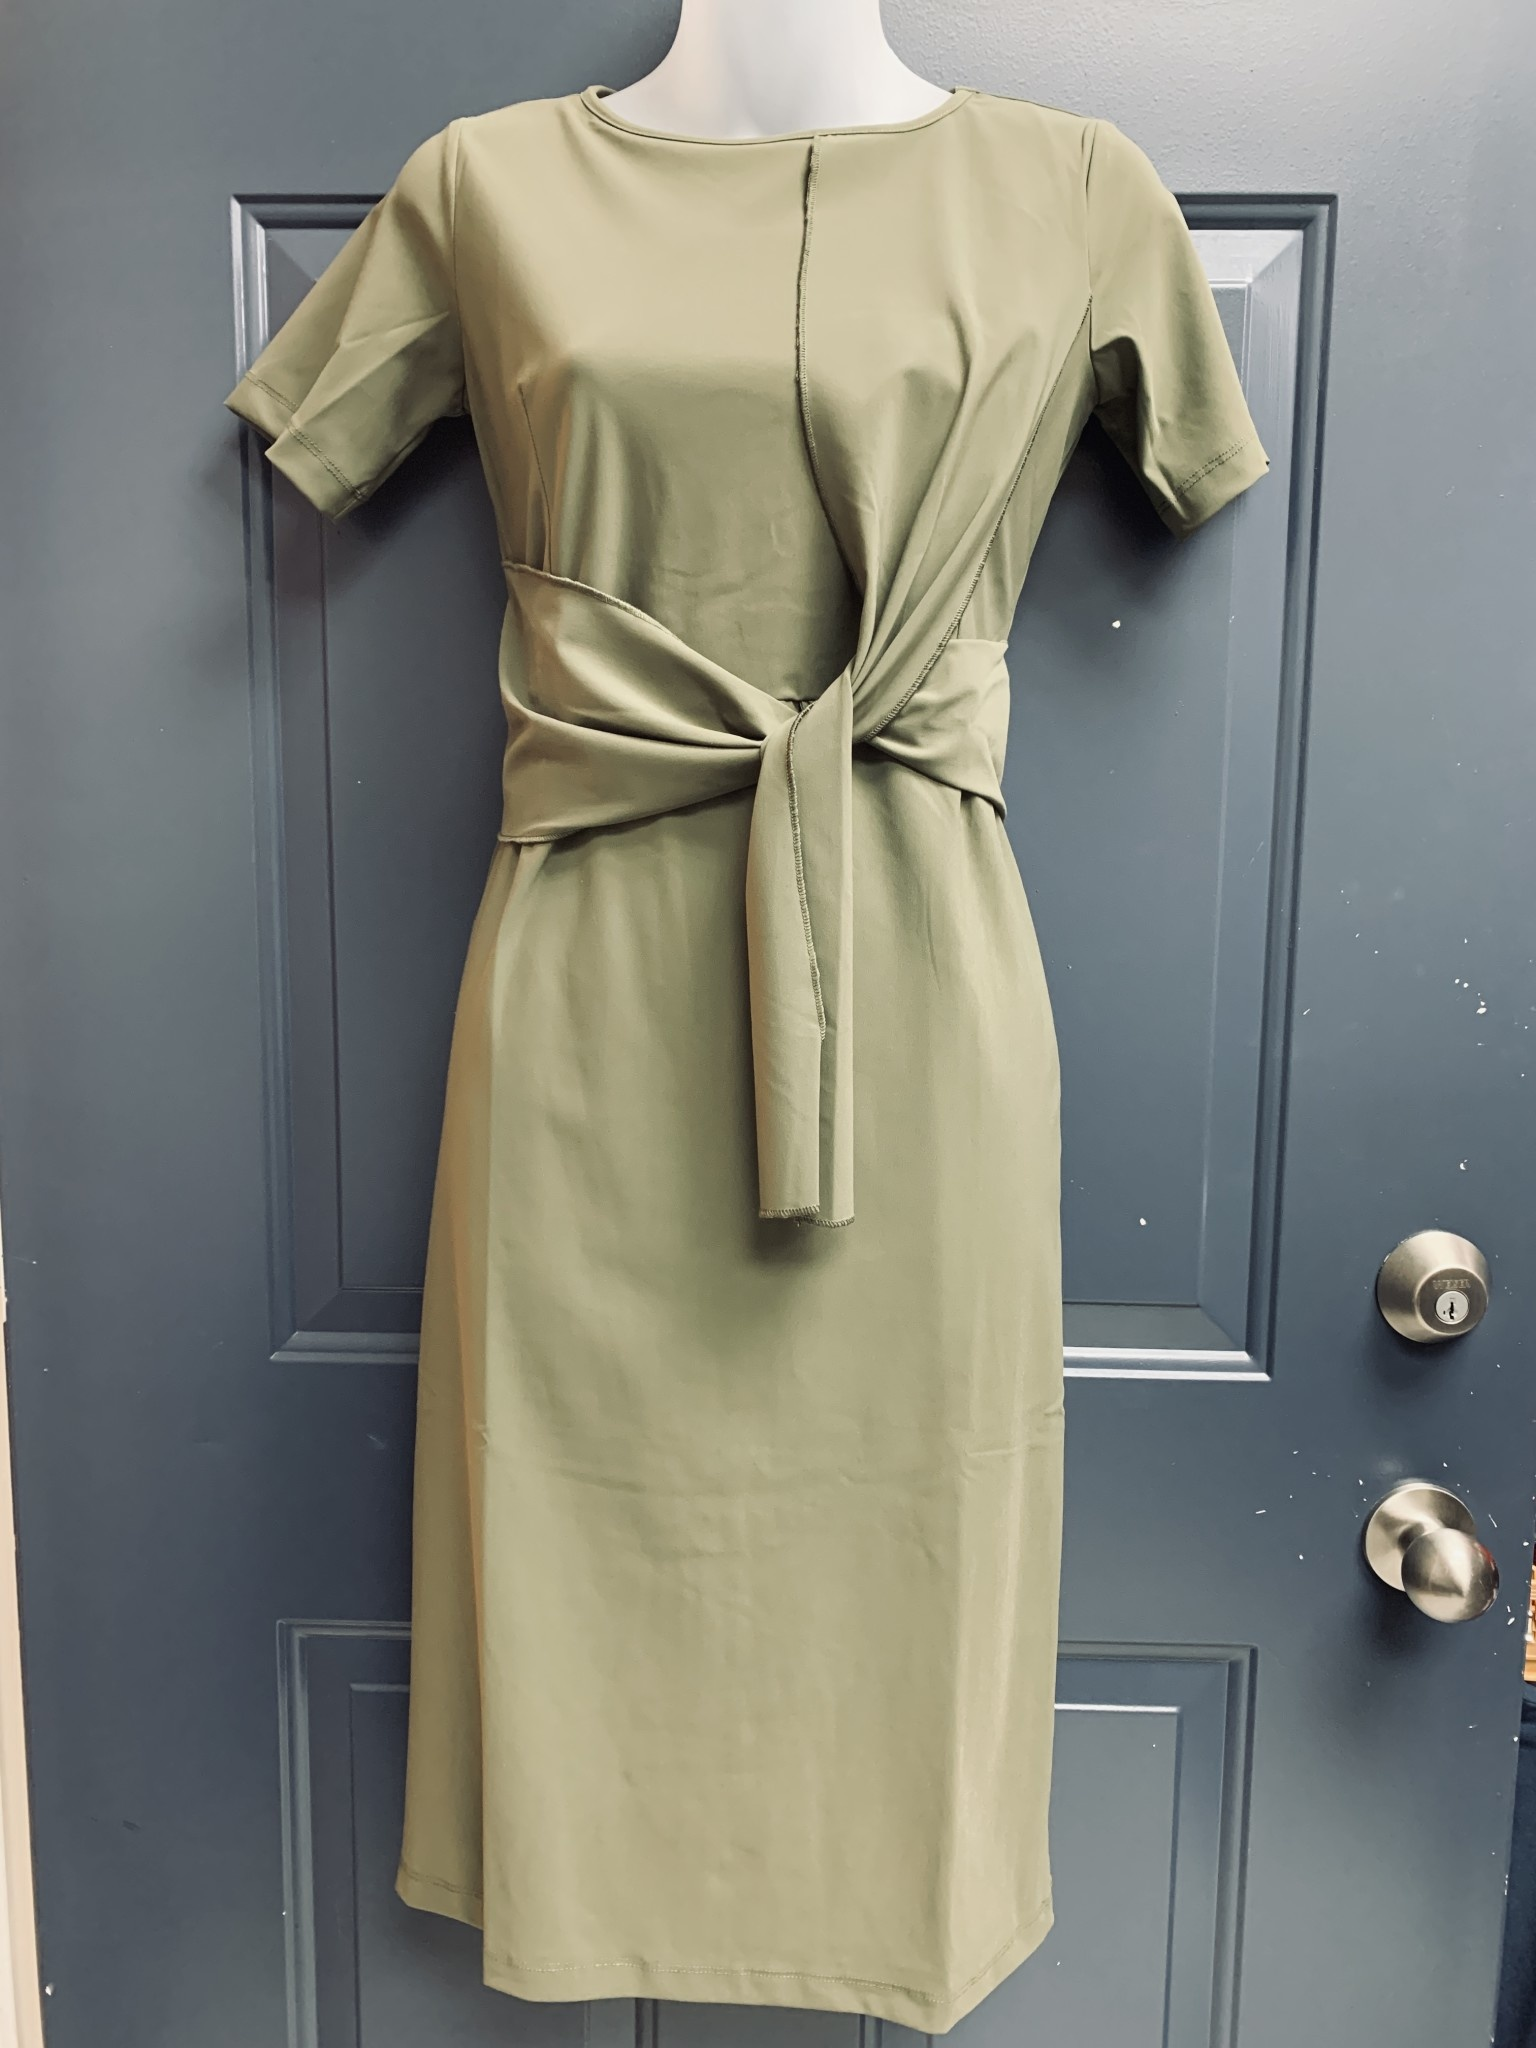 Travel Jersey Dress with Loop Tie Detail - Olive